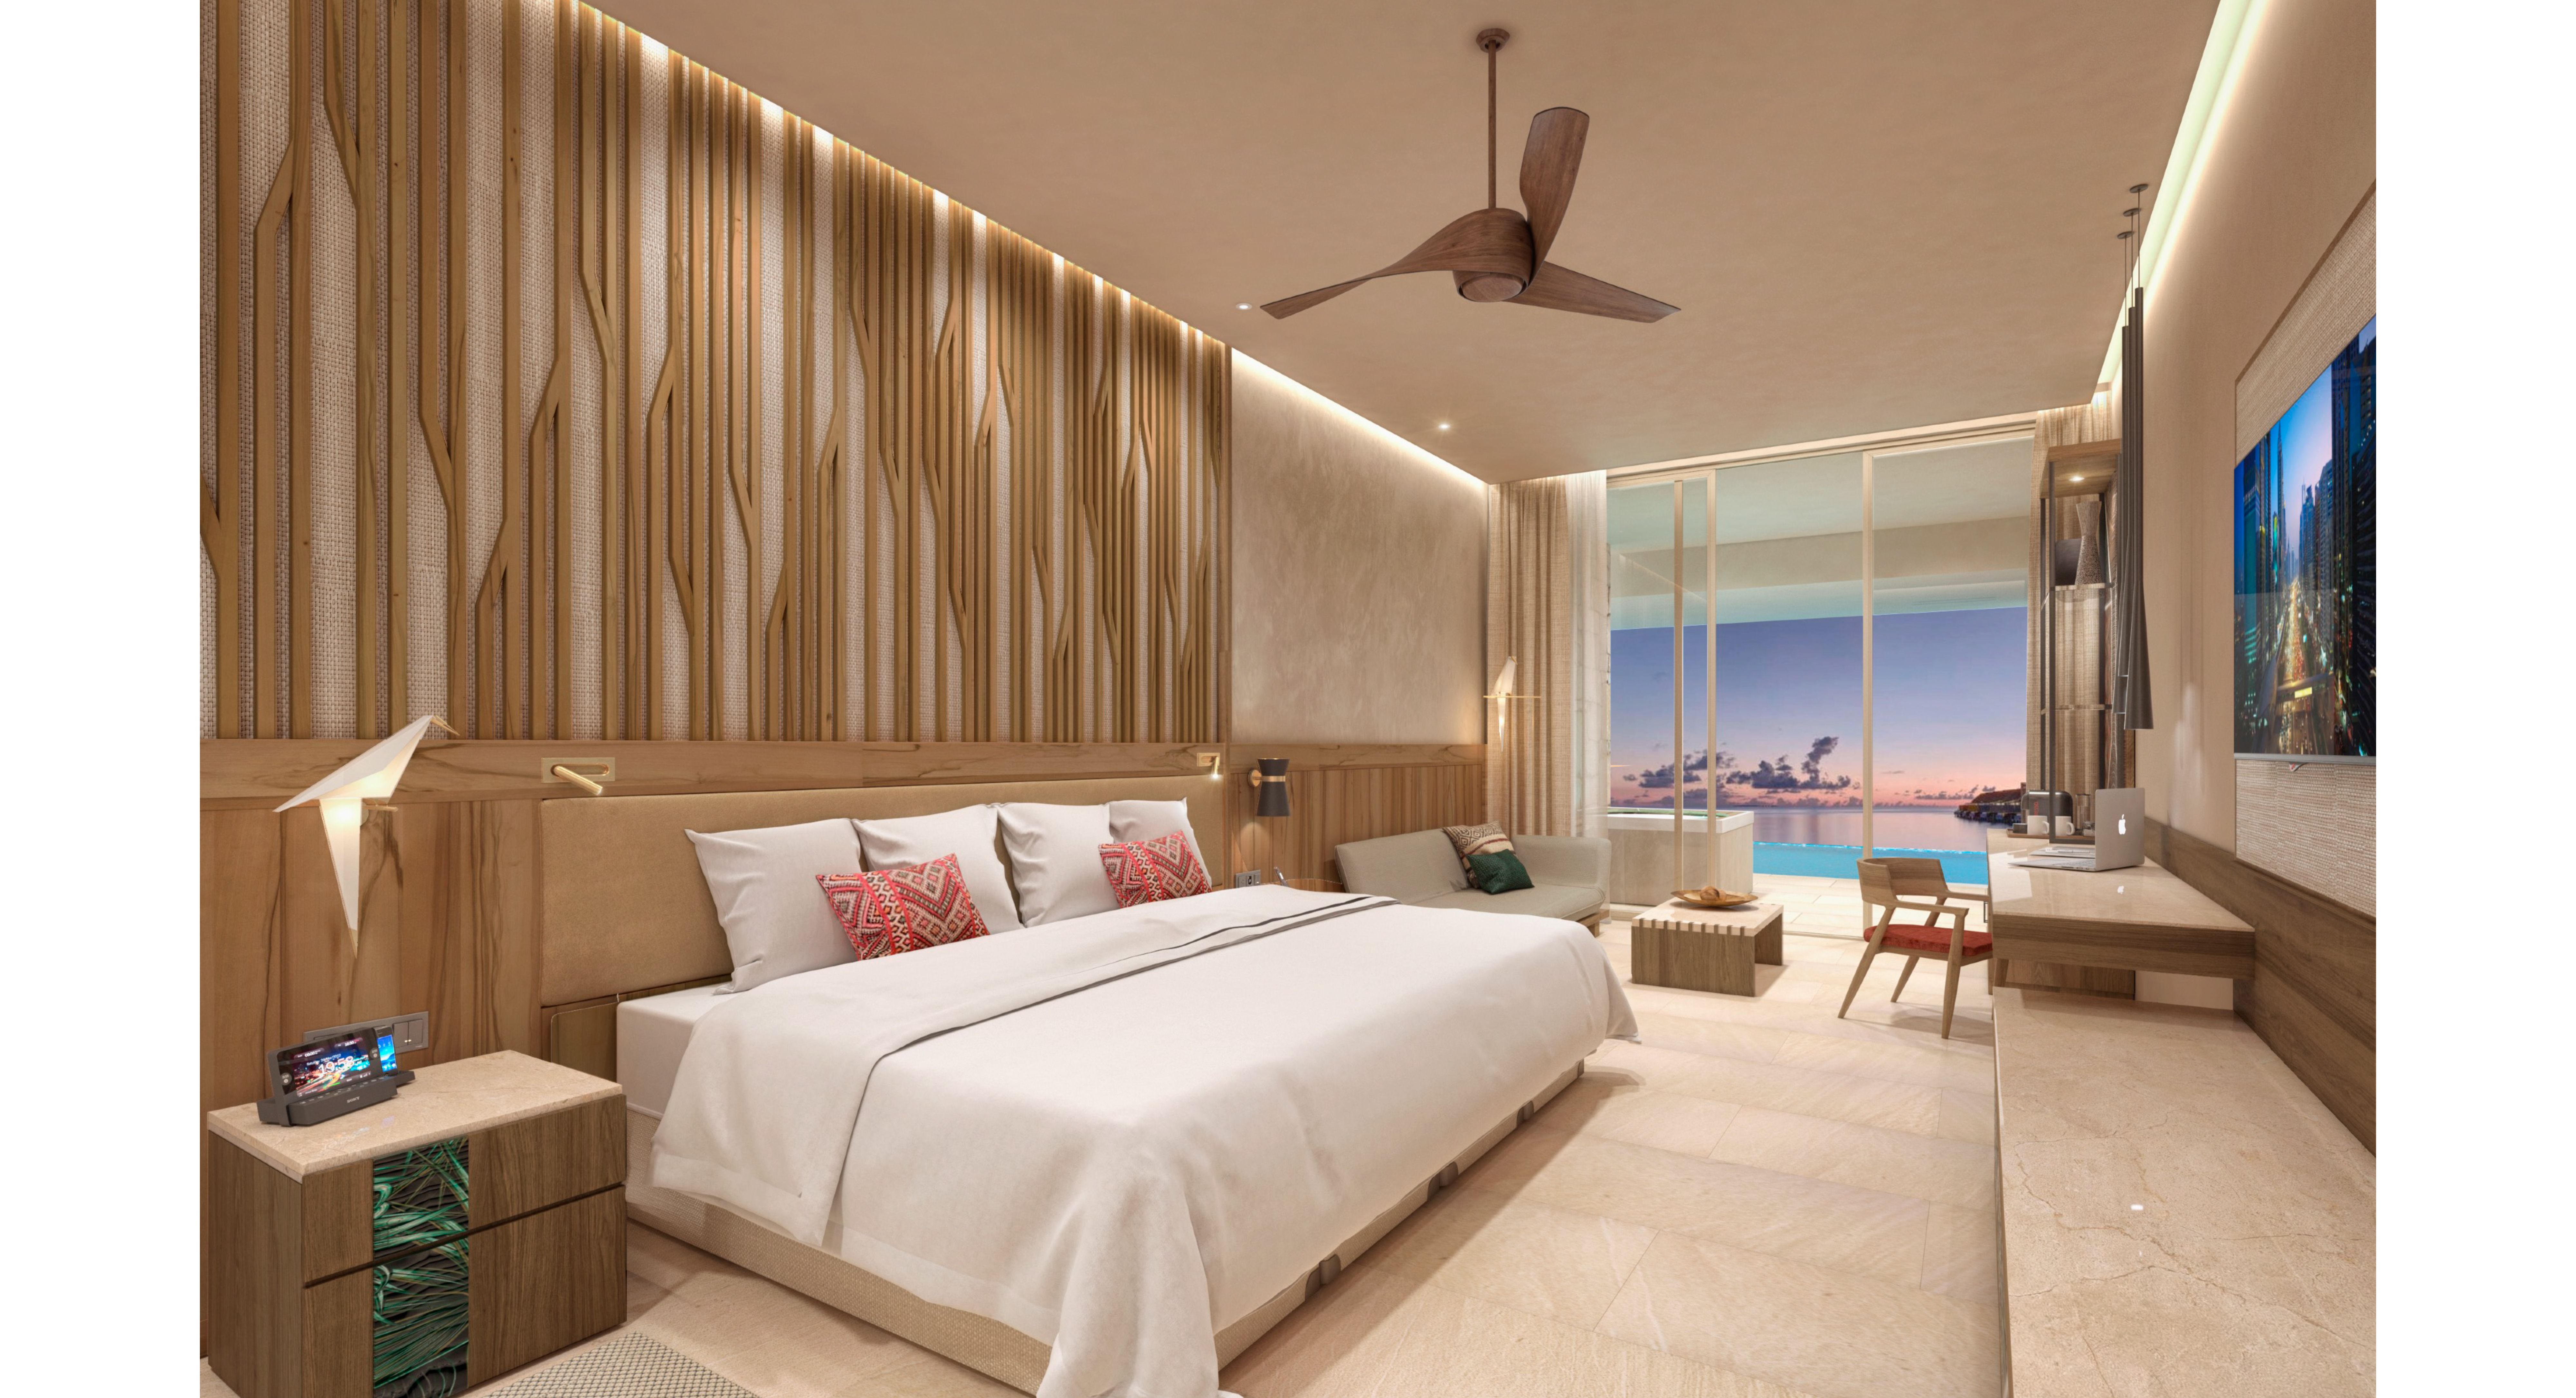 Showing slide 2 of 4 in image gallery showcasing Junior Suite Ocean Front Premium Level